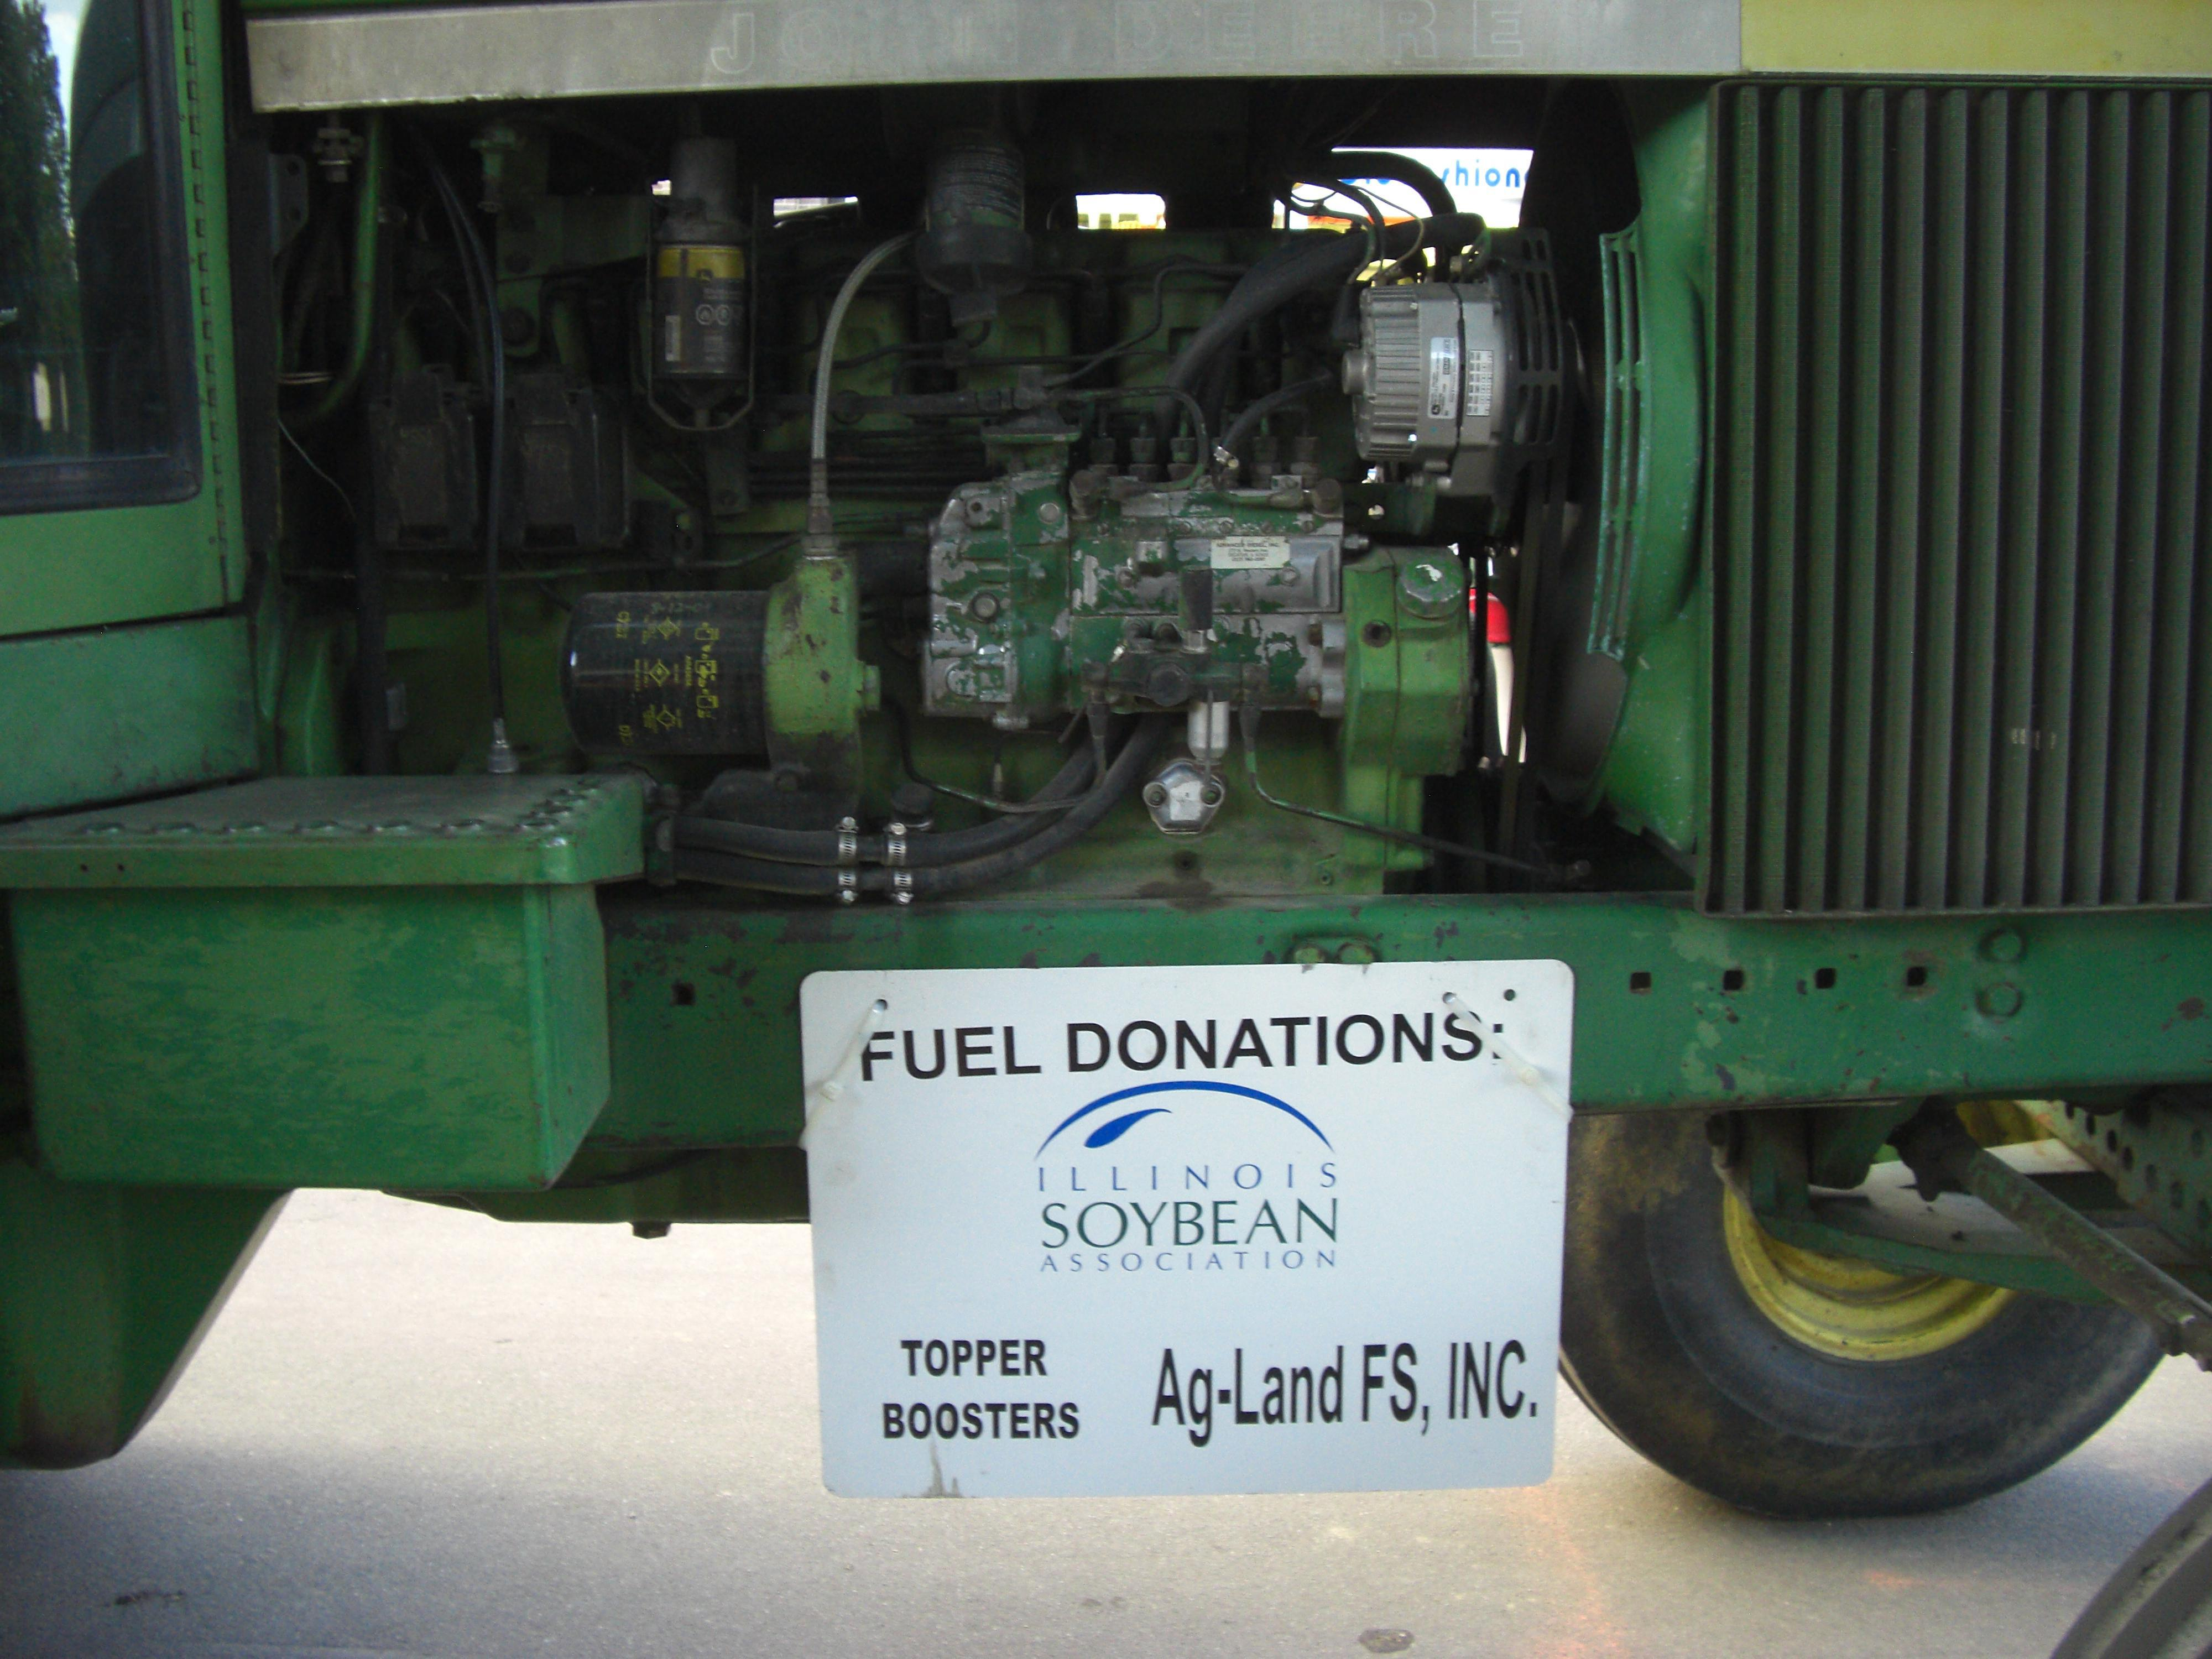 Illinois State Fair tram fuel donations